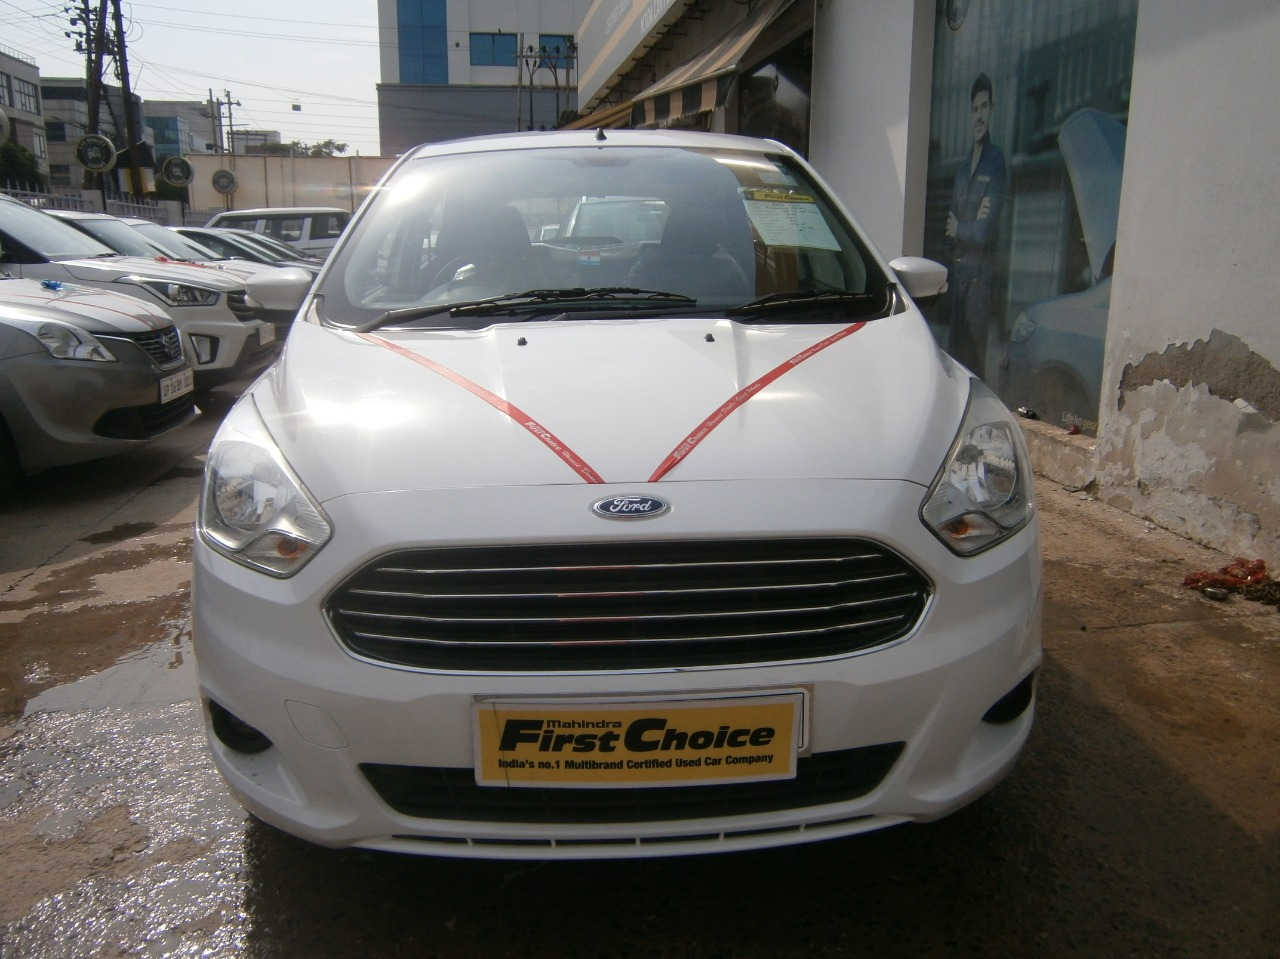 Used Cars In Delhi - Second Hand Cars For Sale - Used Cars